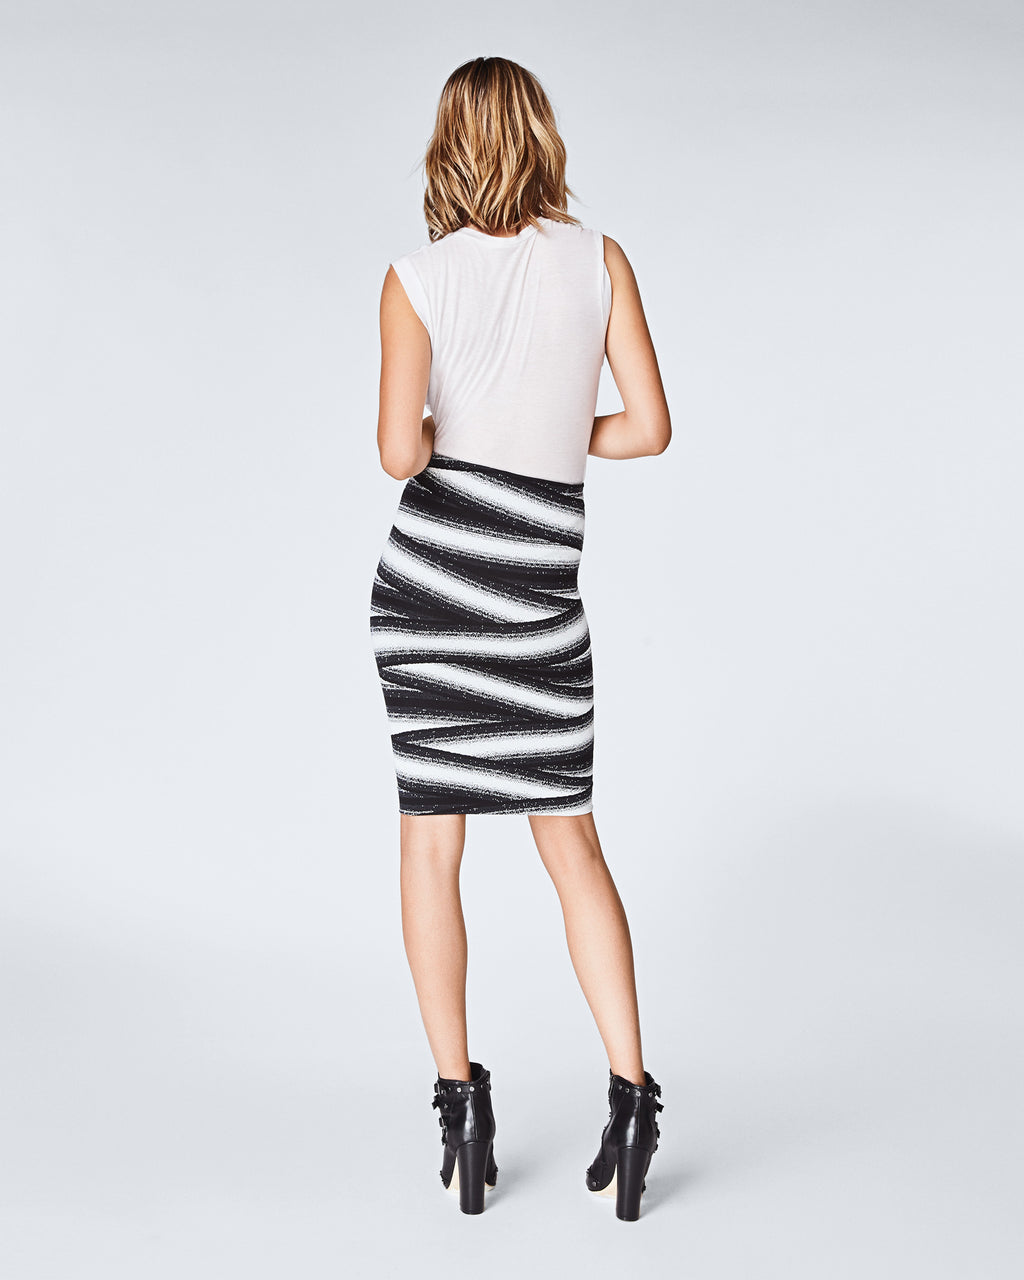 BA10142 - BANDAGE STRIPE SKIRT - bottoms - skirts - With contrasting black and white bandage stripes, this form fitting skirt is perfect for year round wear. The comfortable and figure hugging fabric make this knee-length skirt easy to wear. Finishedwith a concealed zipper for closure and unlined.